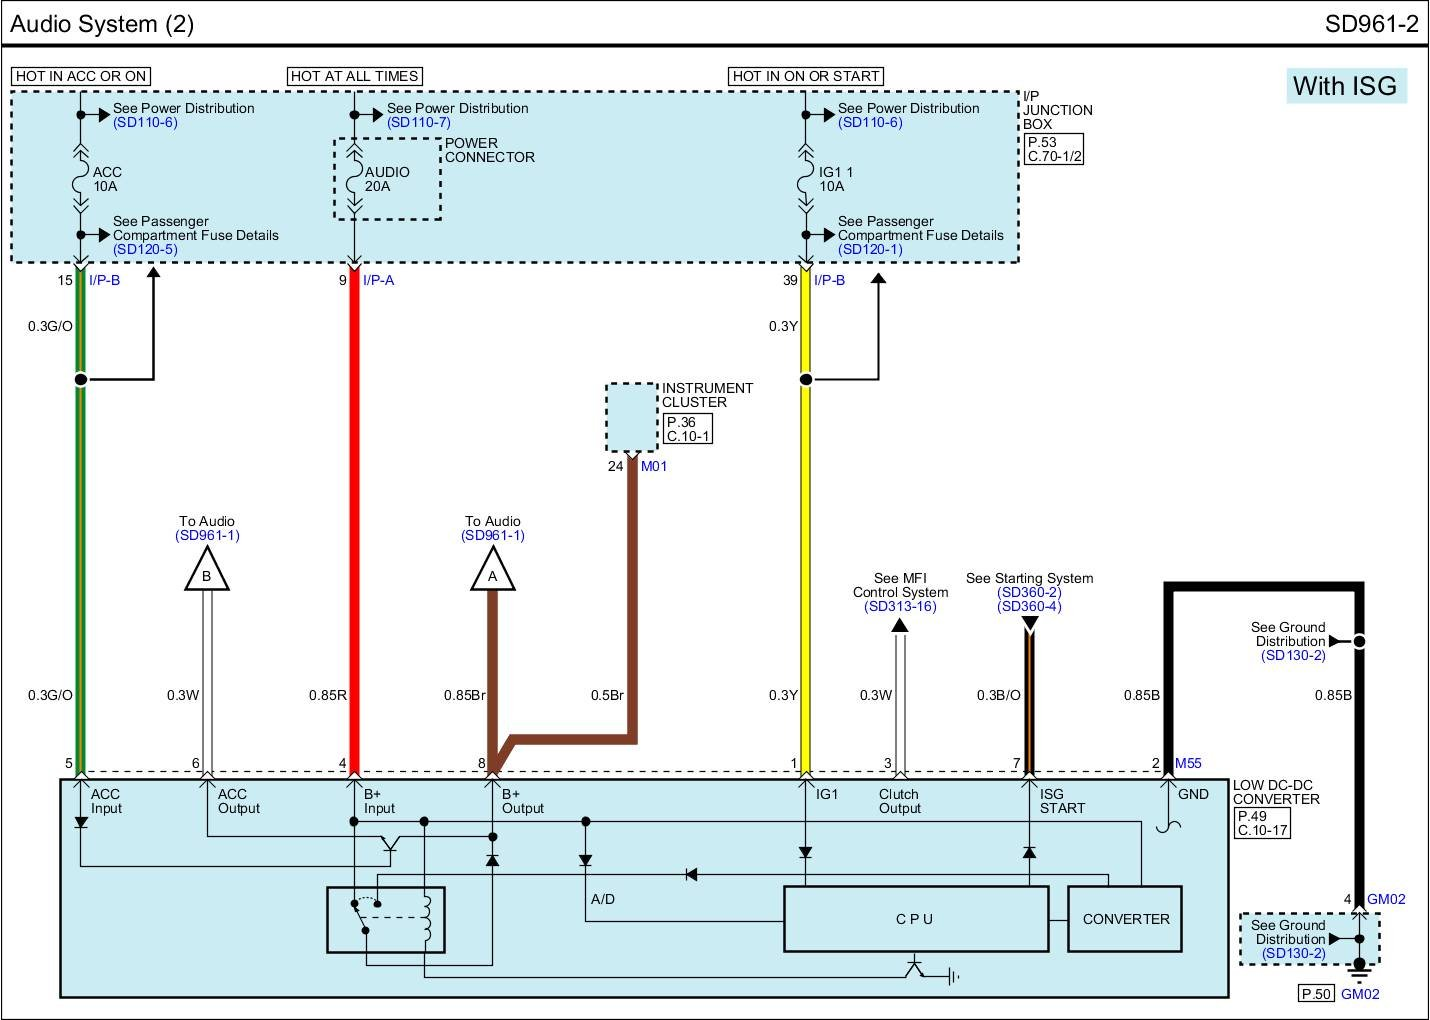 kia picanto 2009 radio wiring diagram 1998 chevy blazer for 2013 rio sx with navigation page